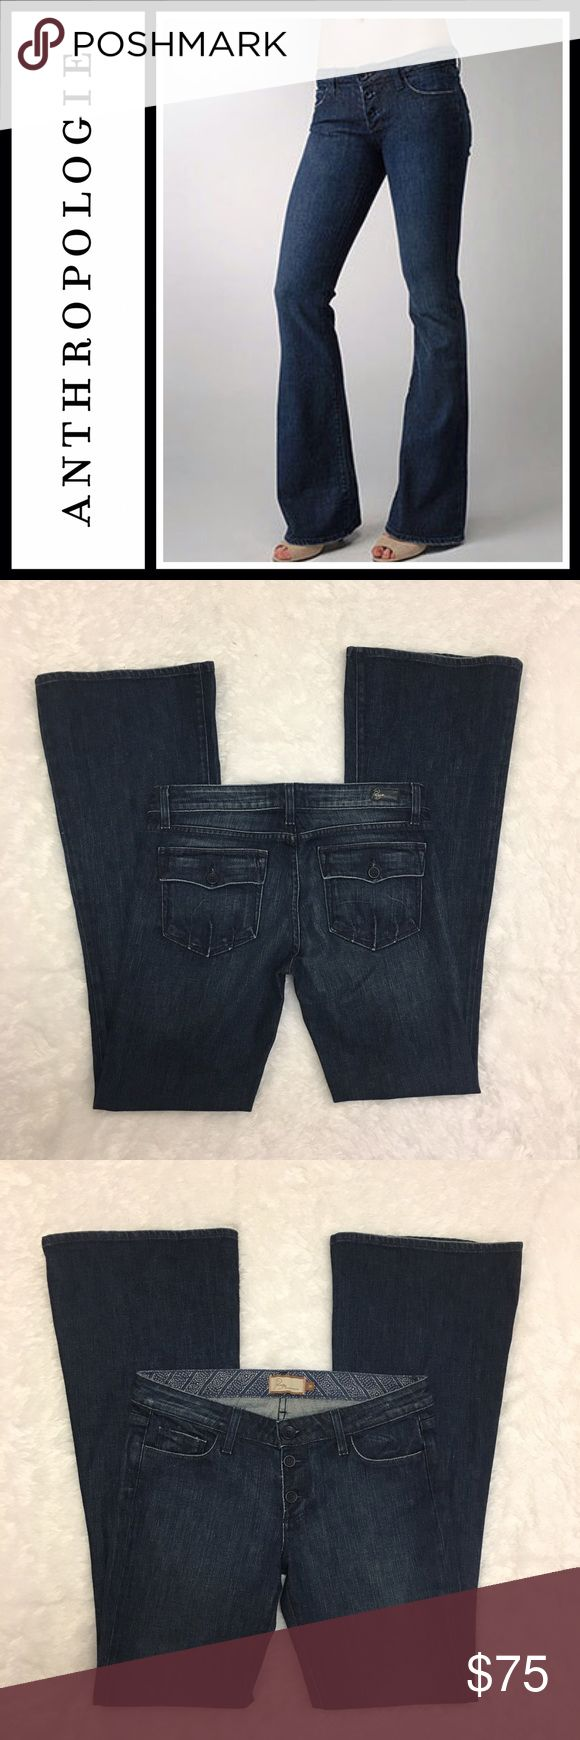 "Paige Calabasas Flare leg jeans NWOT Tried on but never worn, got these at anthropologie- Paige premium calabasas denim flare leg jeans - inseam 34"" - size 30 - Anthropologie Jeans Flare & Wide Leg"